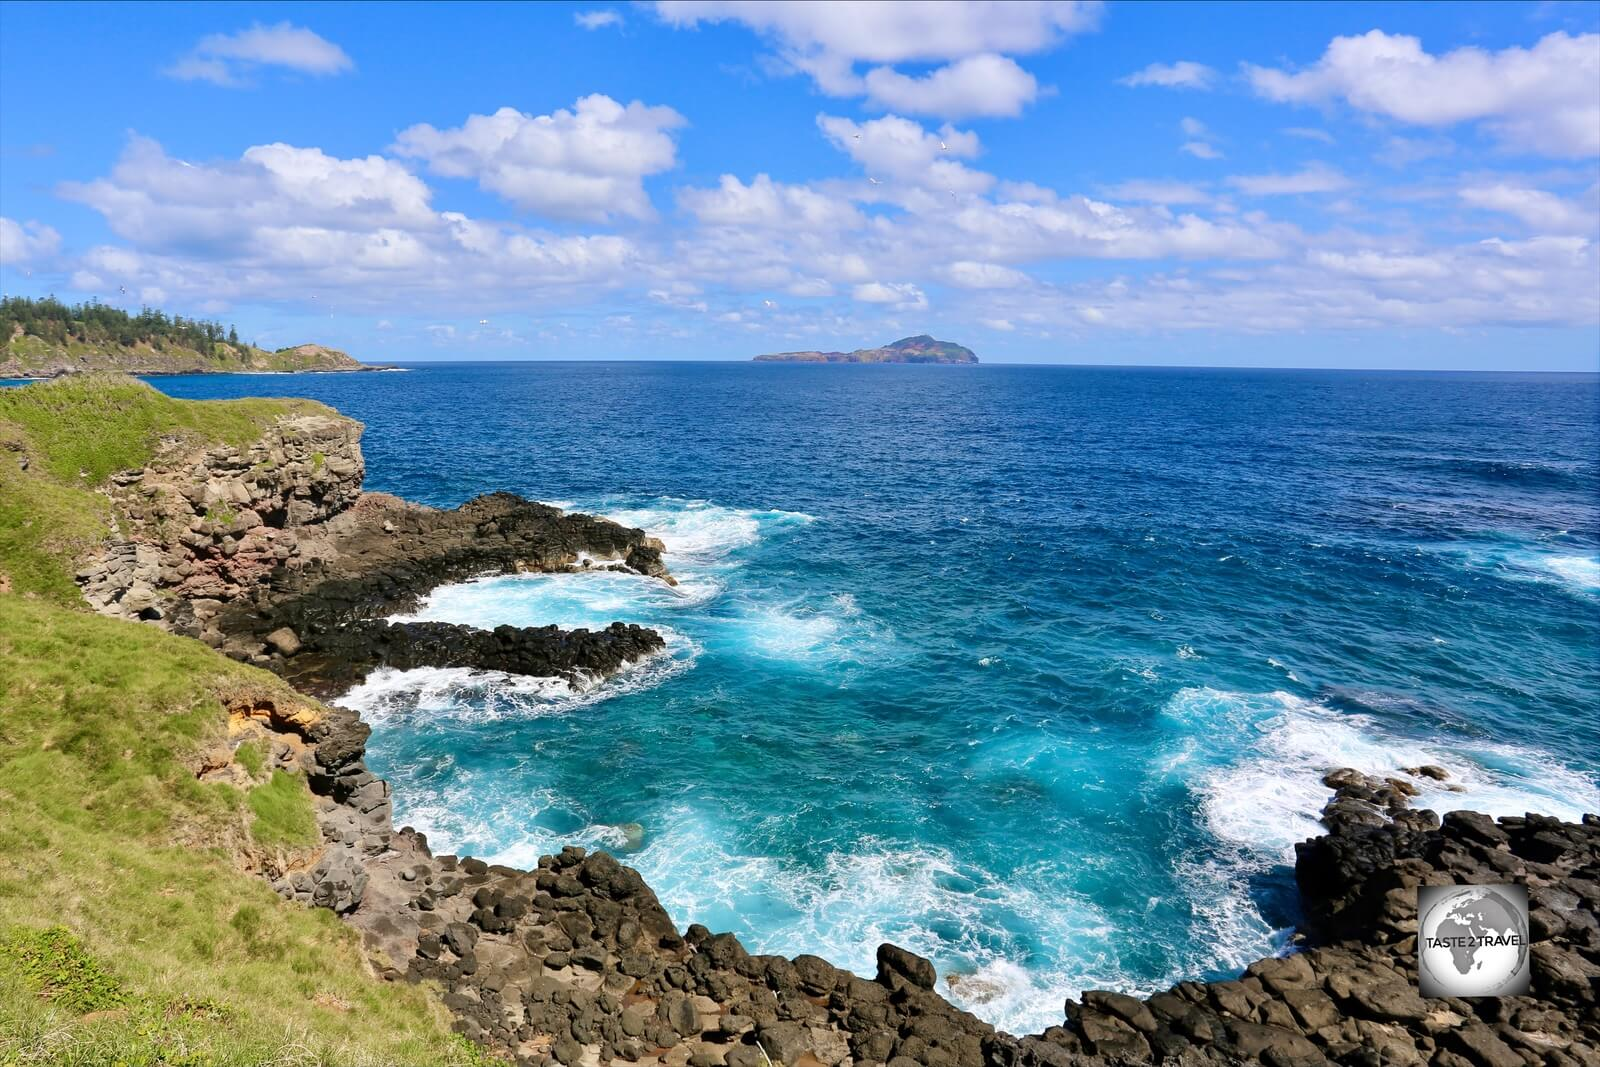 A view of the South Coast of Norfolk Island from the 100 Acres Reserve.